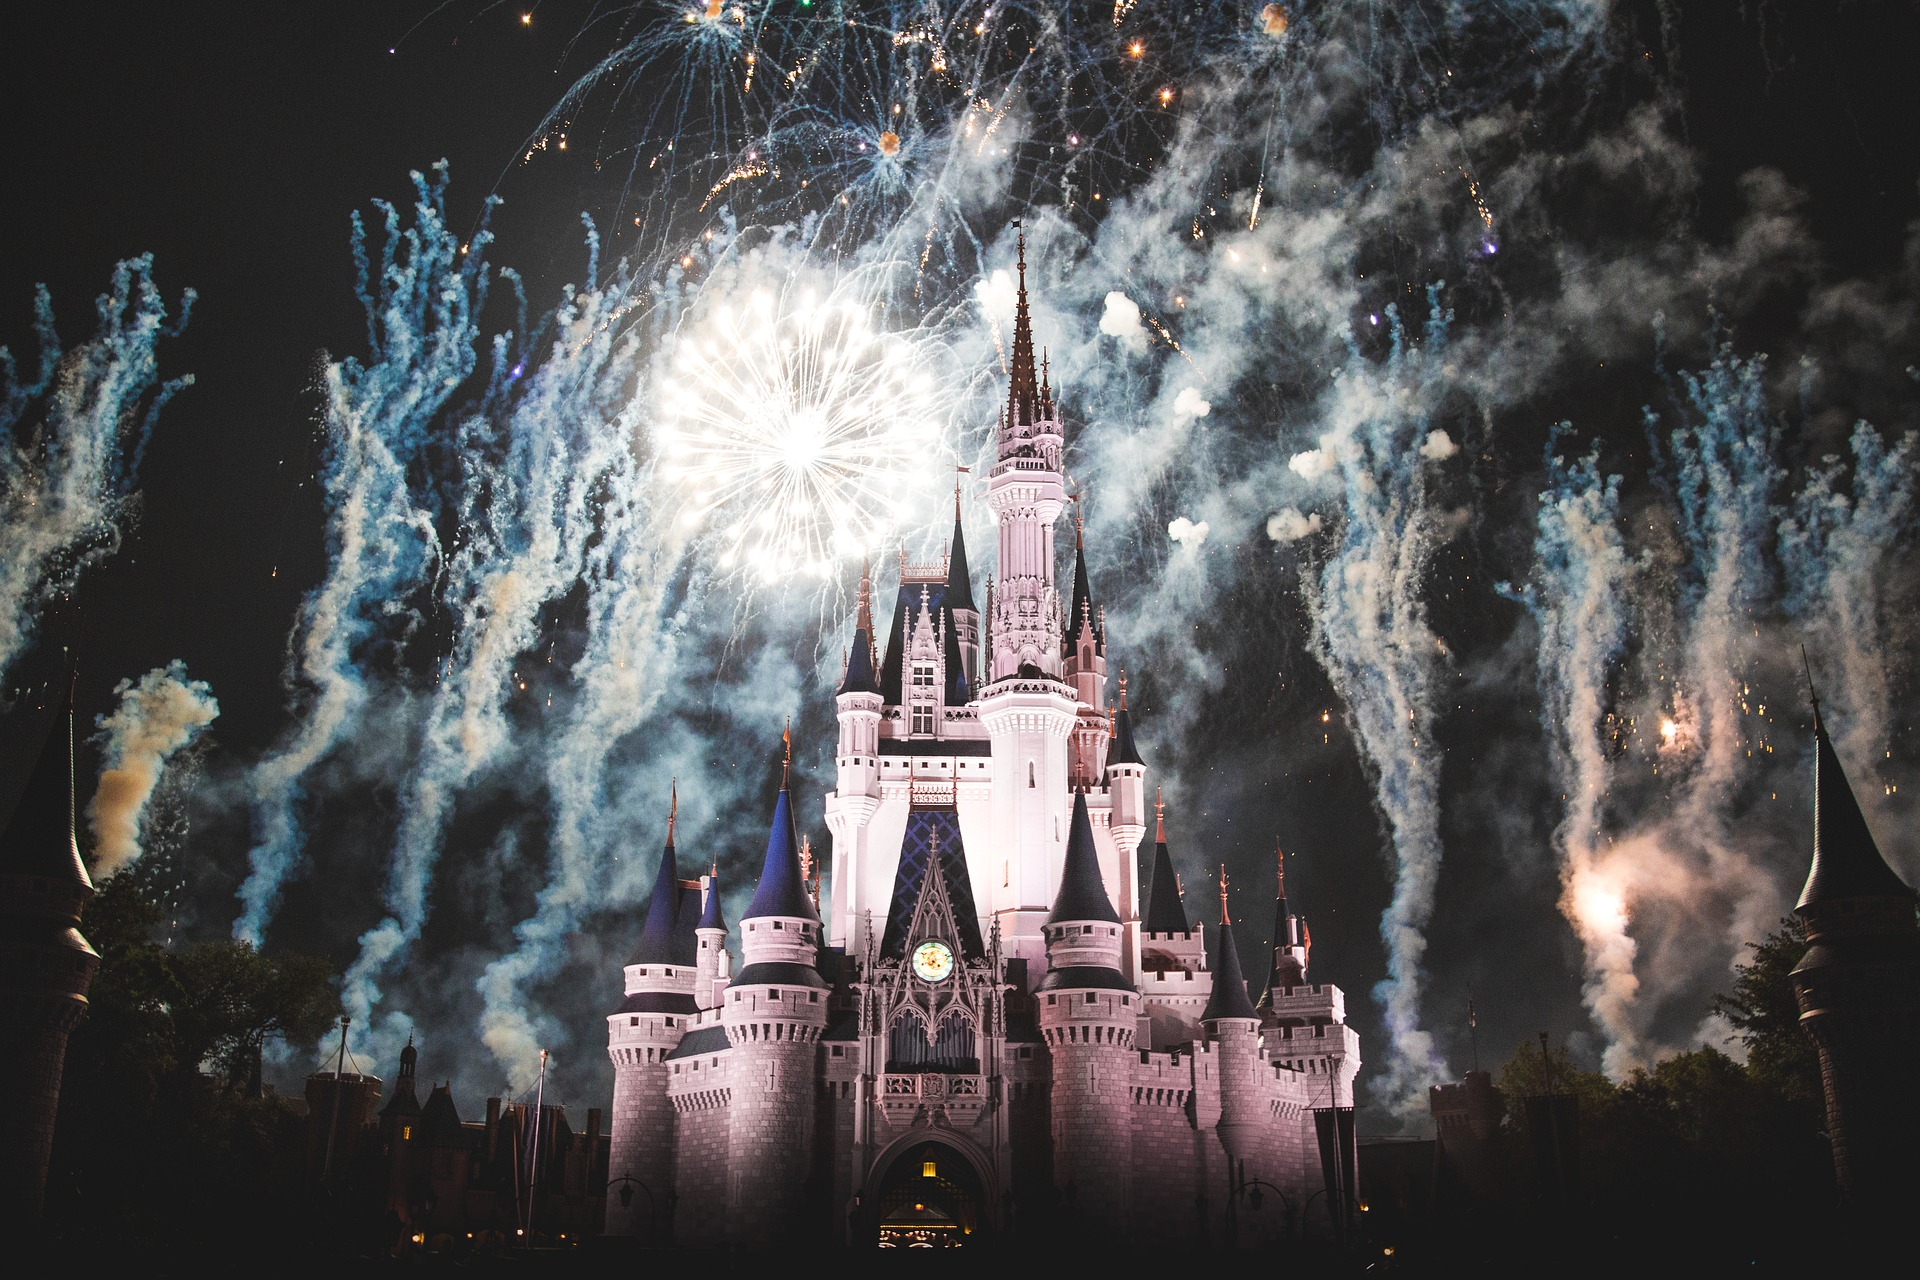 viajes-vamonos-a-disney-los angeles-orlando-california-florida-travel-disneyworld-disneyland-tips-english-espanol-style by nomads-lifestyle-travel blog-stylebynomads